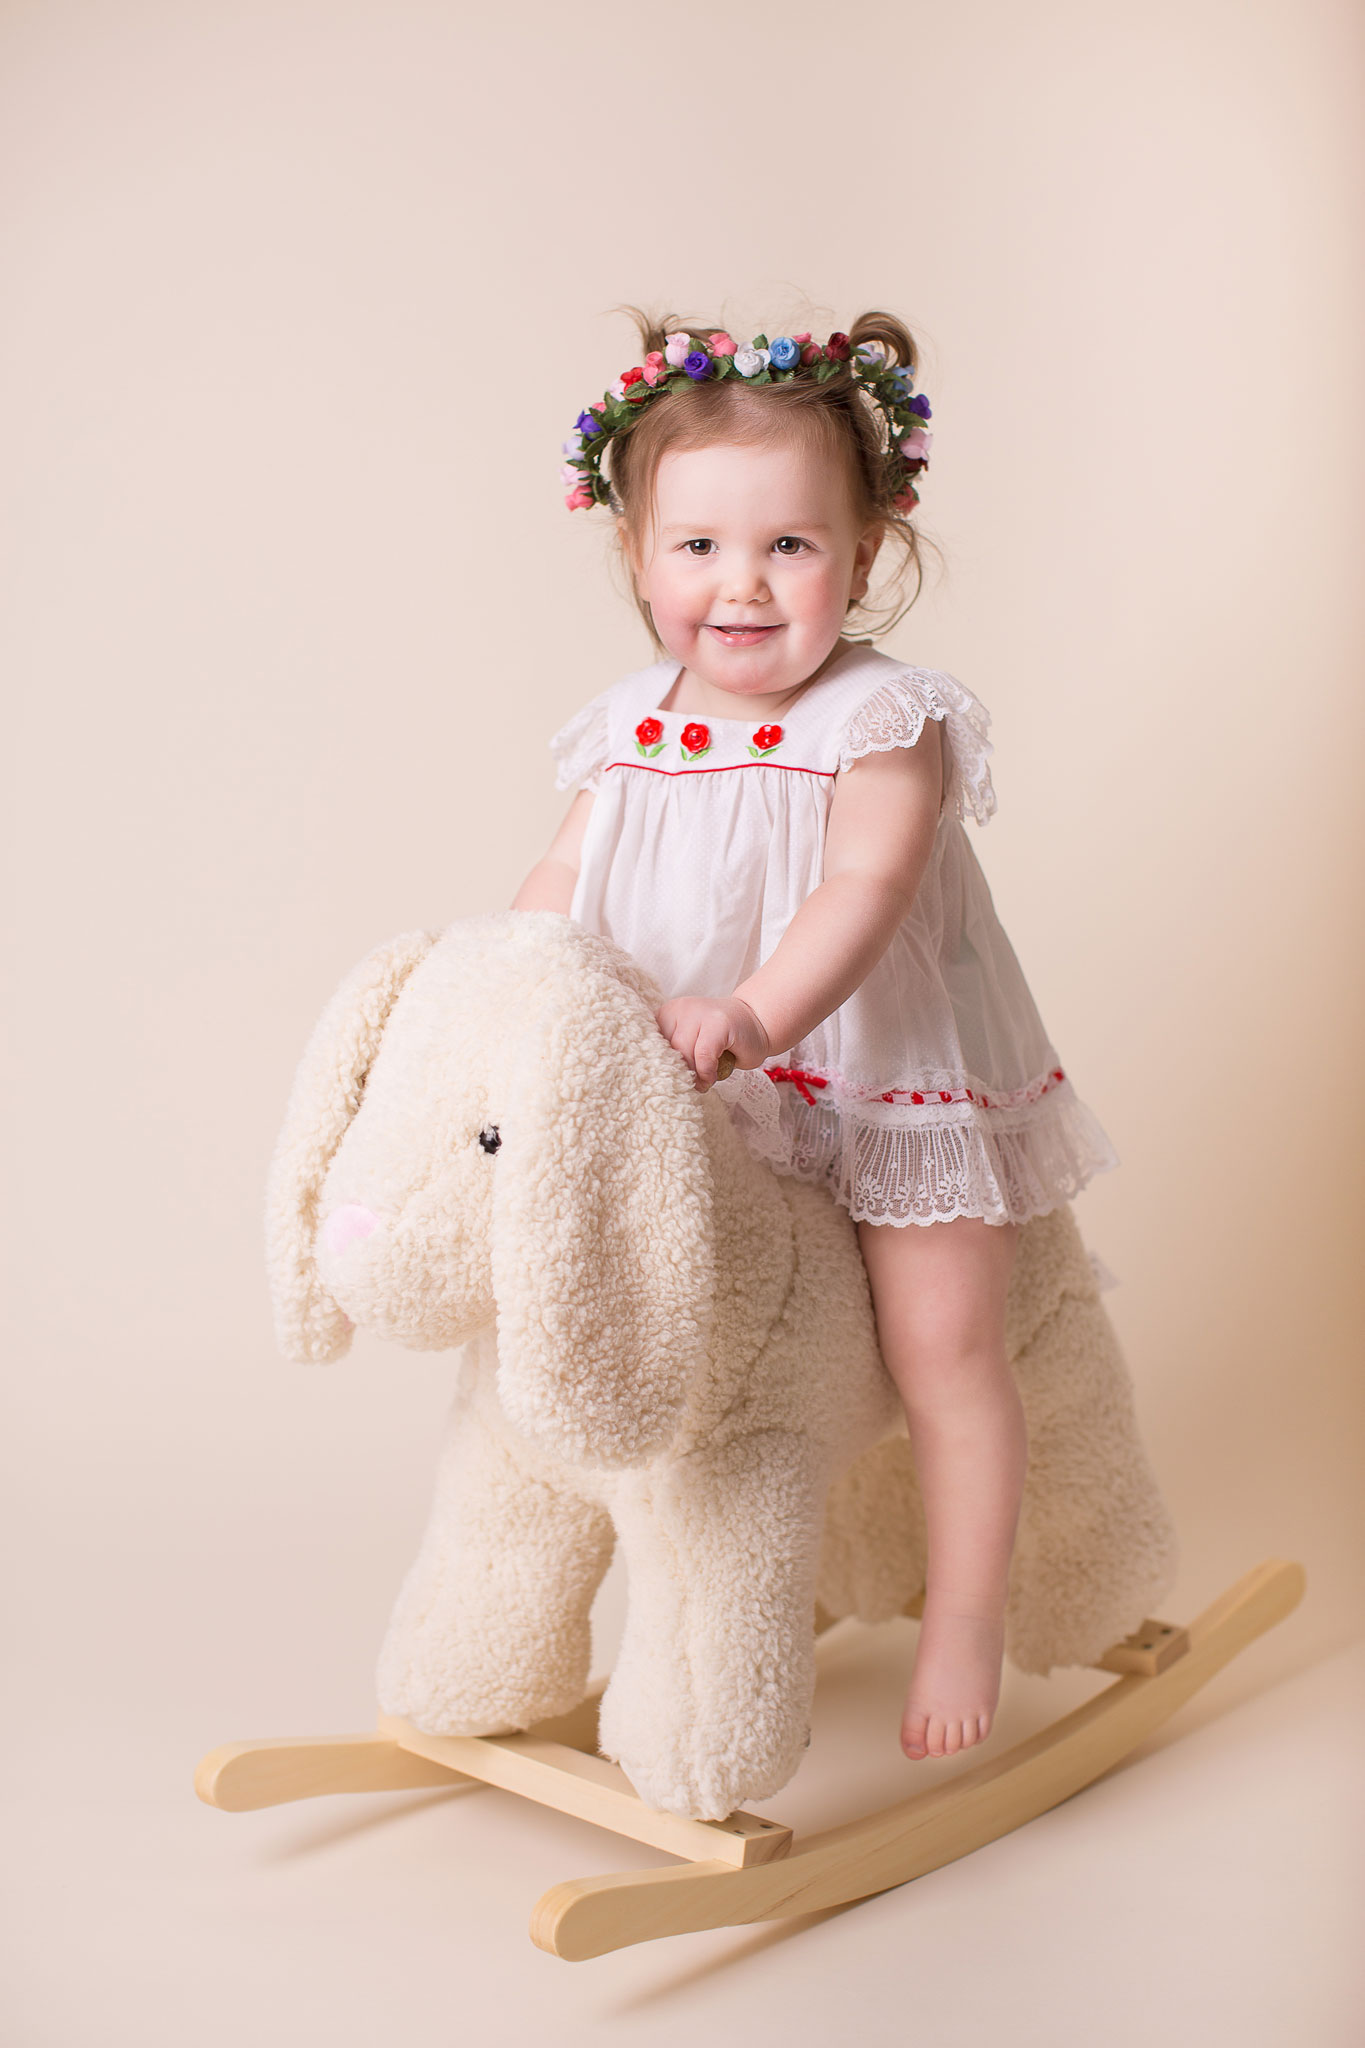 Girl sitting on rocking lamb with flower headband in her head